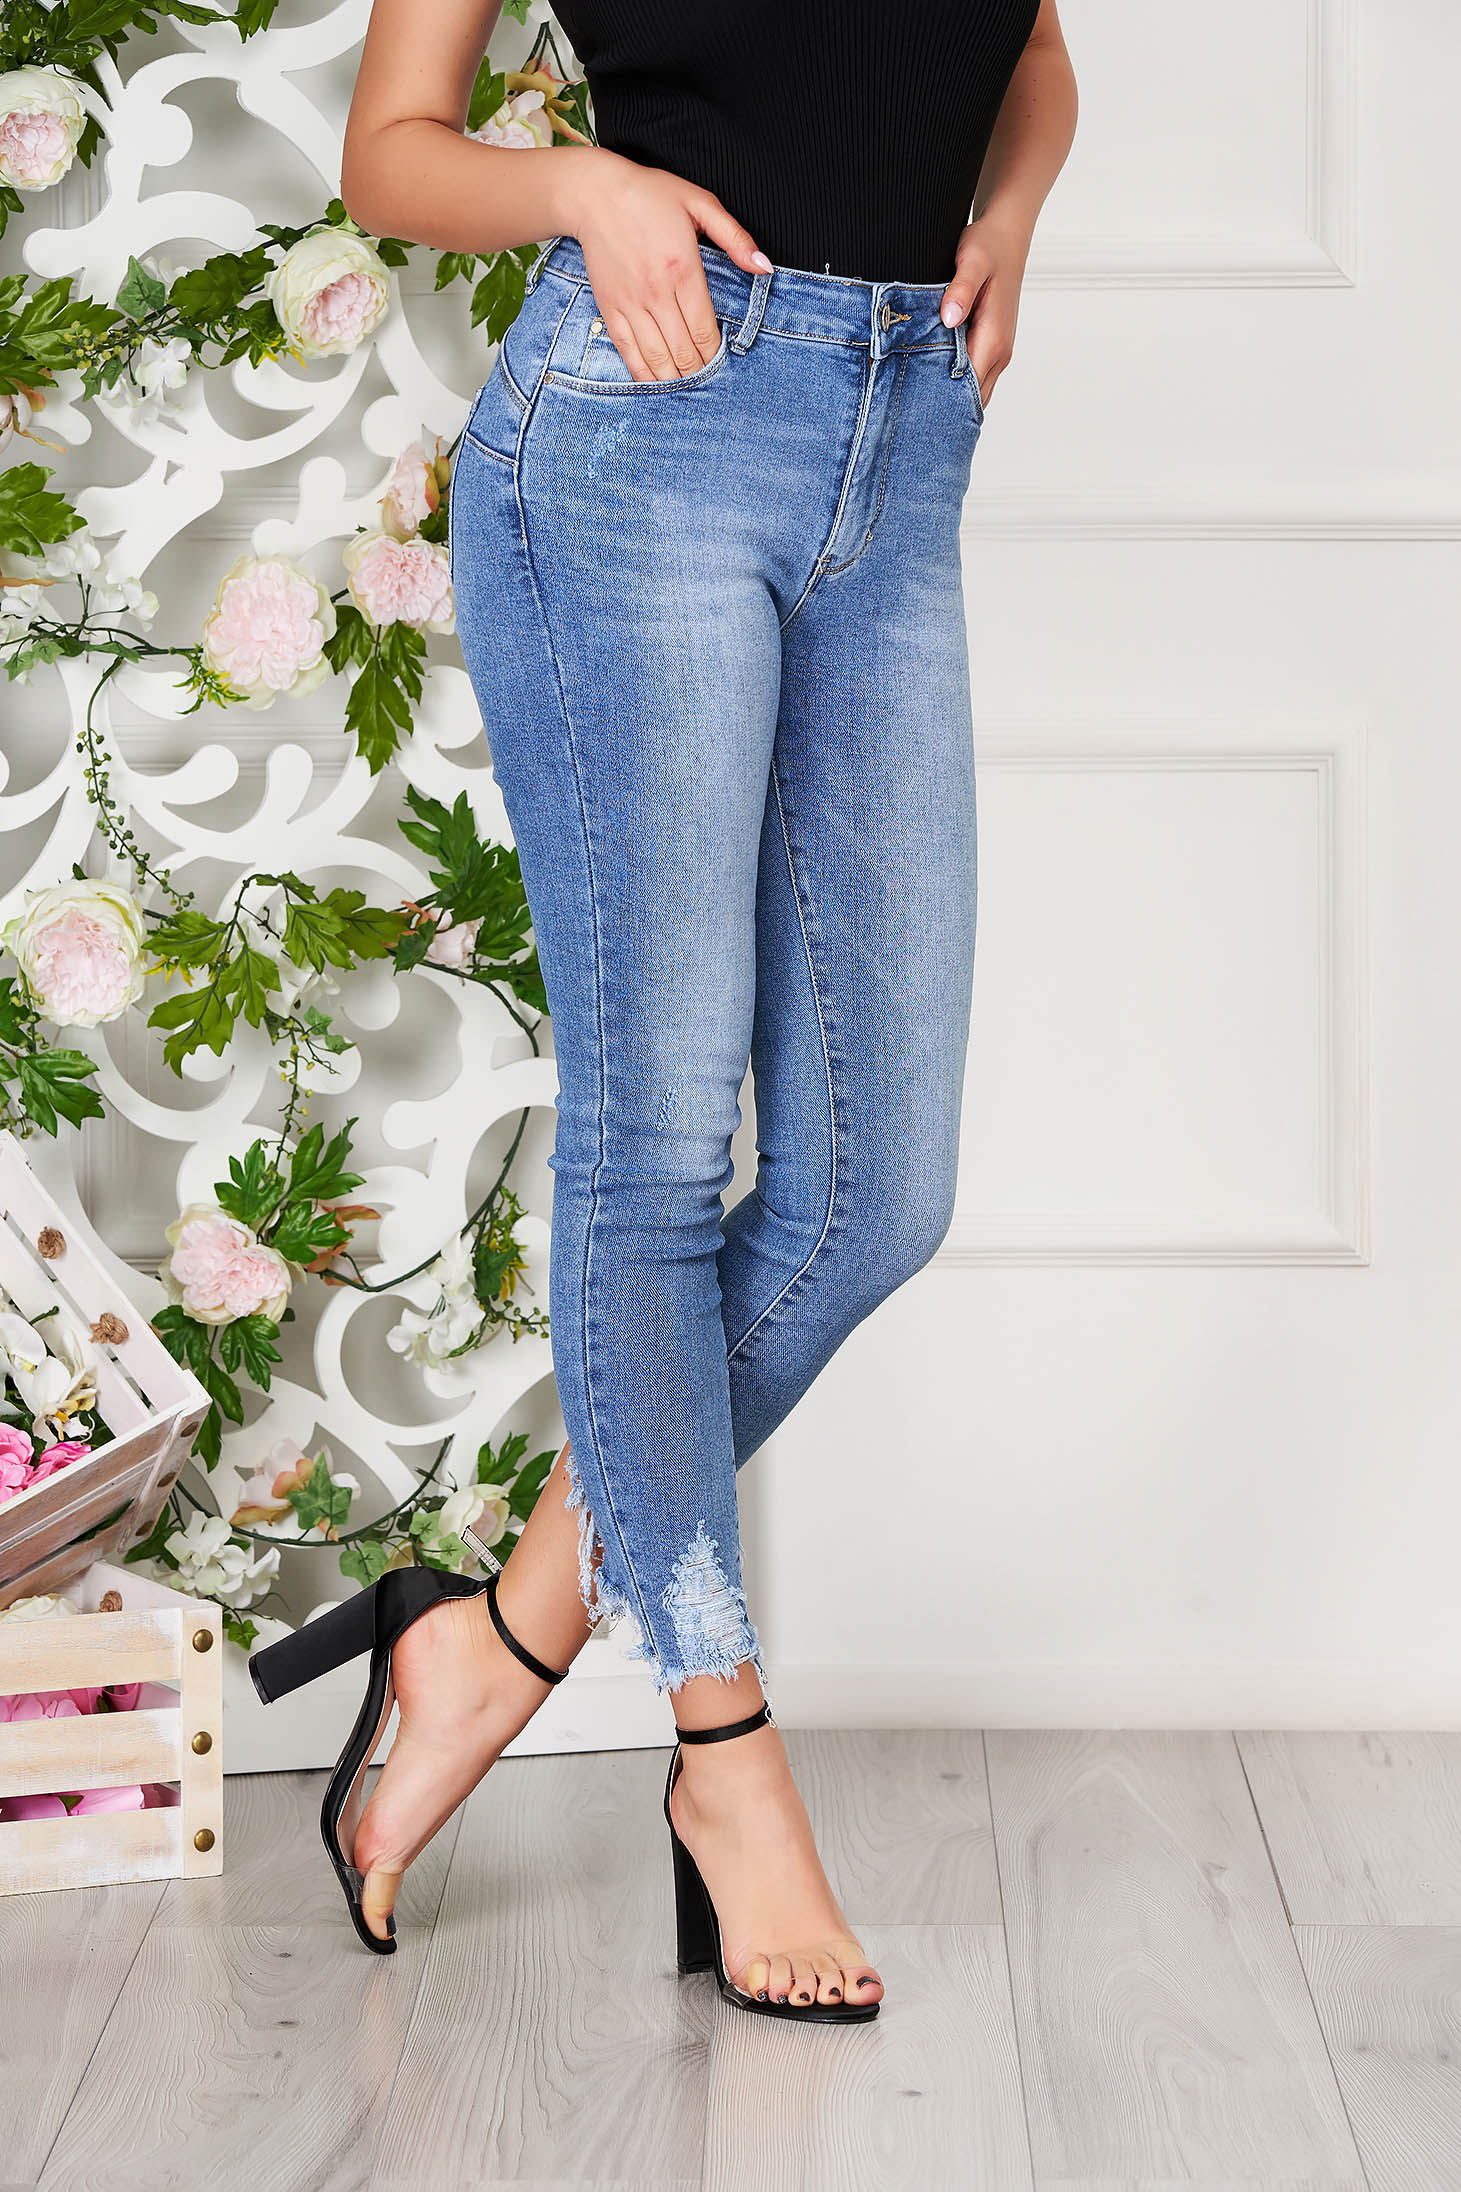 Blue jeans casual with ruptures denim with pockets medium waist stretch